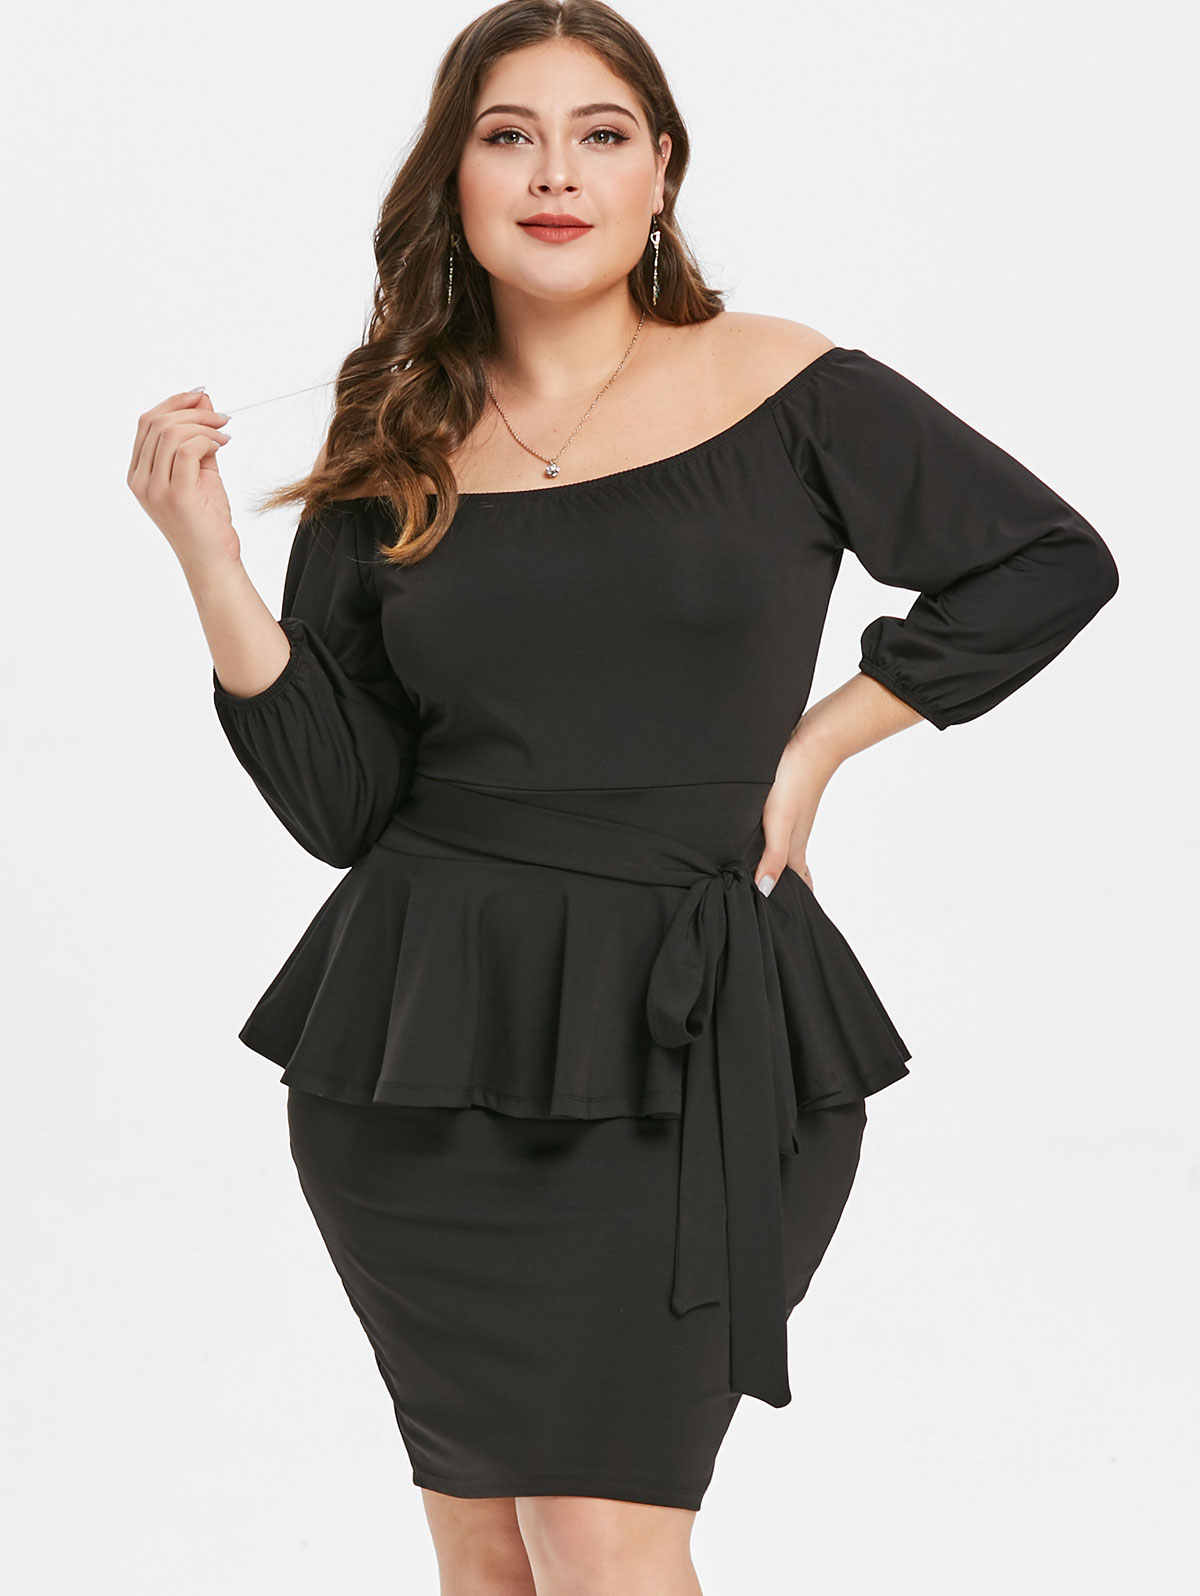 Wipalo Plus Size Off The Shoulder 3/4 Sleeves Belted Peplum Dress Women  Clothing Winter Spring Black Bodycon Dress Vestidos 5XL